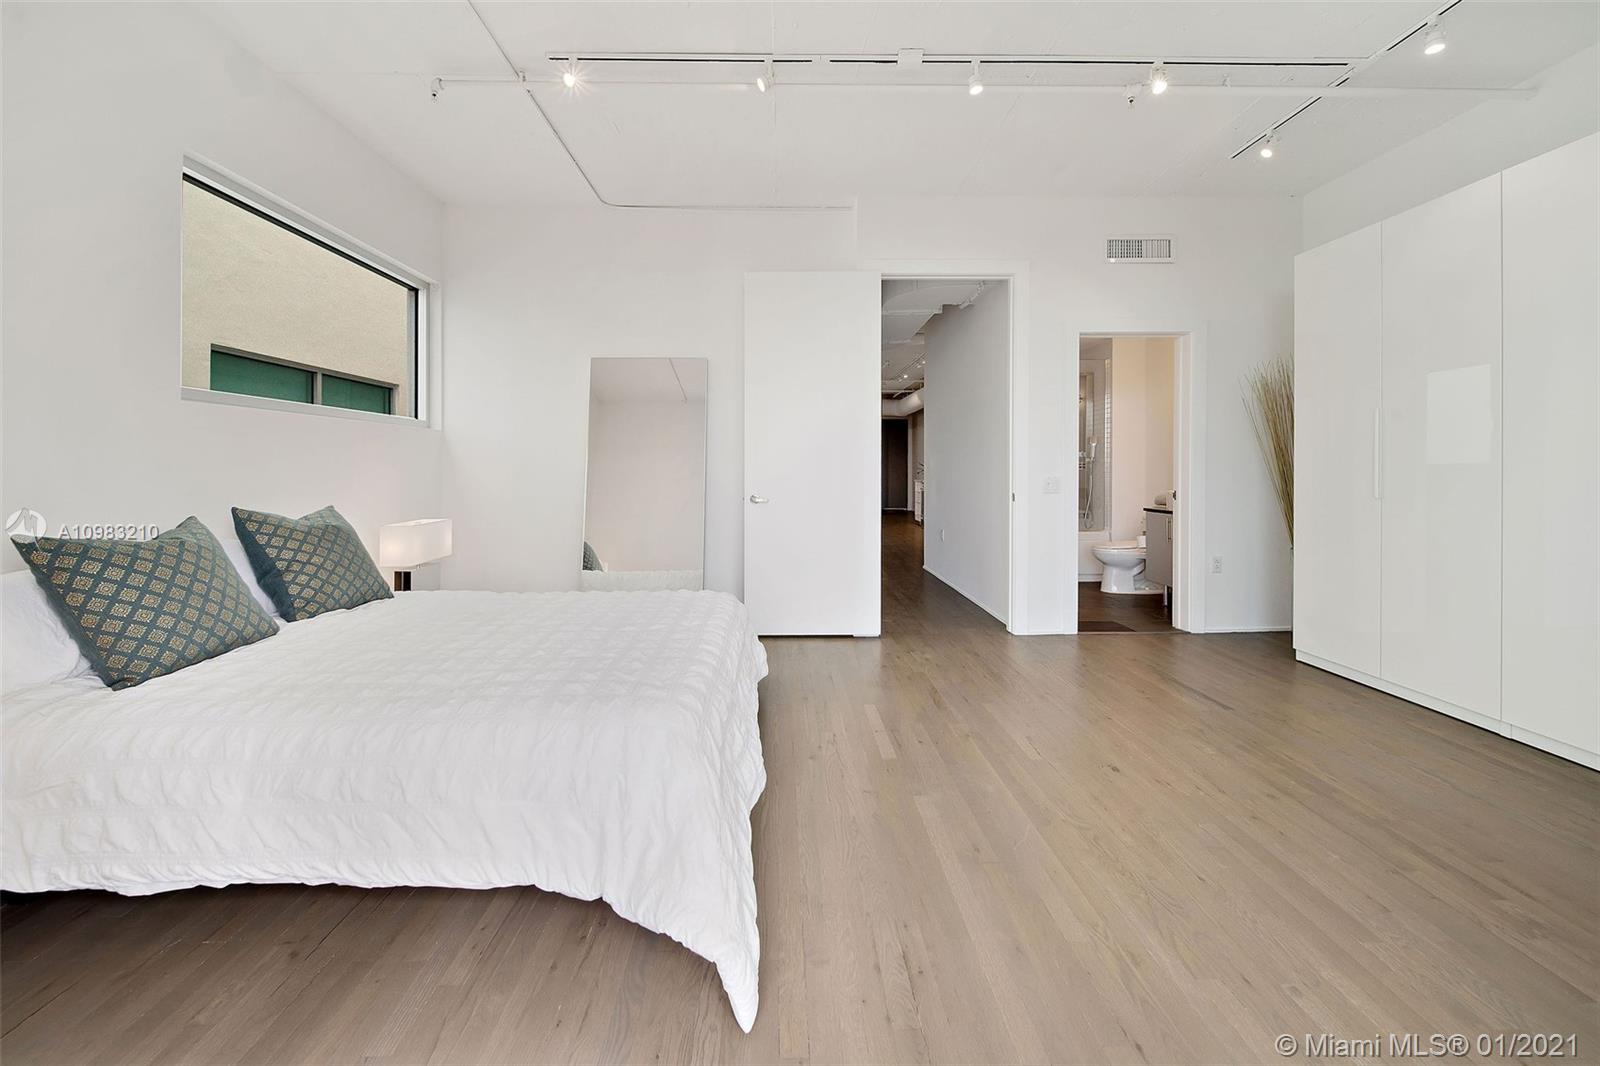 1700 Meridian Ave # 404, Miami Beach, Florida 33139, 2 Bedrooms Bedrooms, ,2 BathroomsBathrooms,Residential,For Sale,1700 Meridian Ave # 404,A10983210